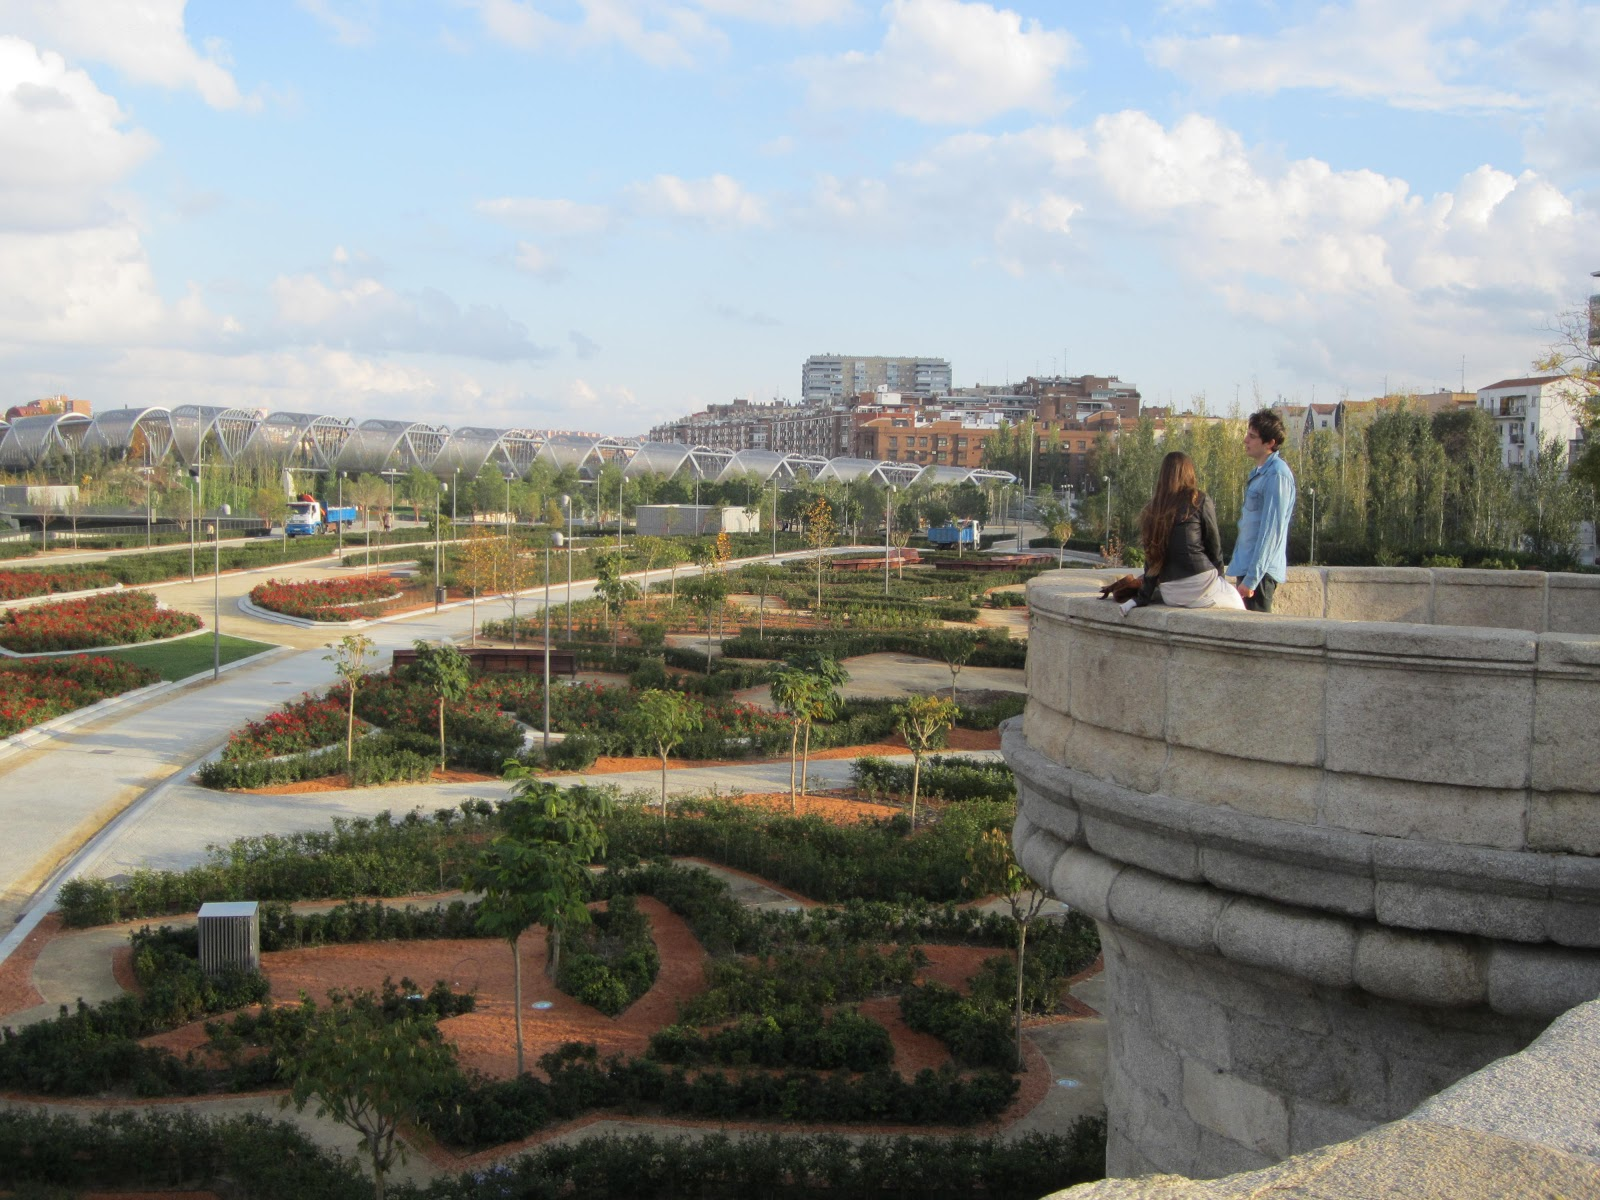 This used to be a highway! | La Citta Vita, View of Madrid Rio (6382197239), CC BY-SA 2.0